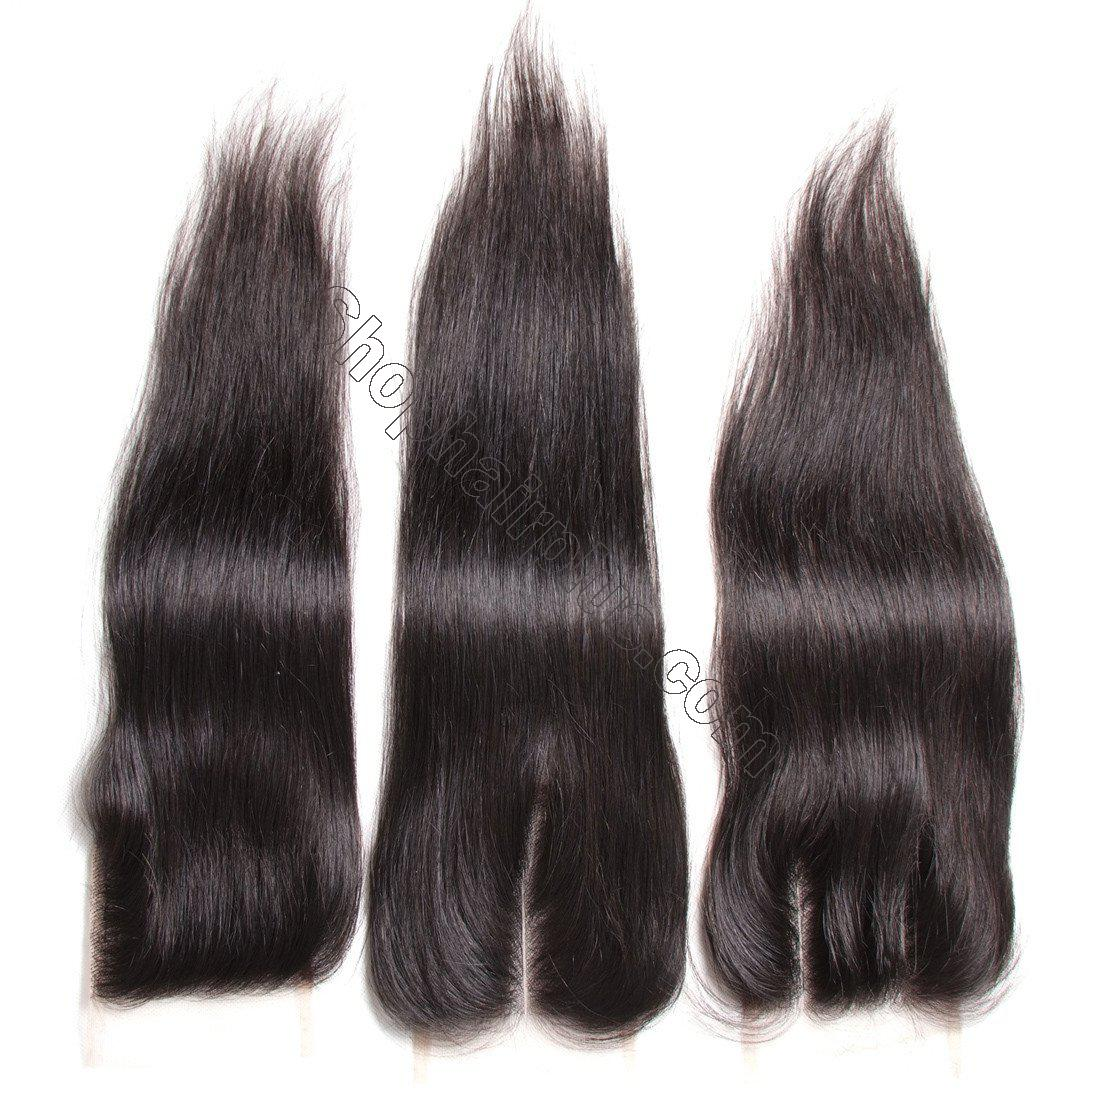 7A Malaysian Straight Virgin Hair 3Bundles with 4x4 Lace Closure 2